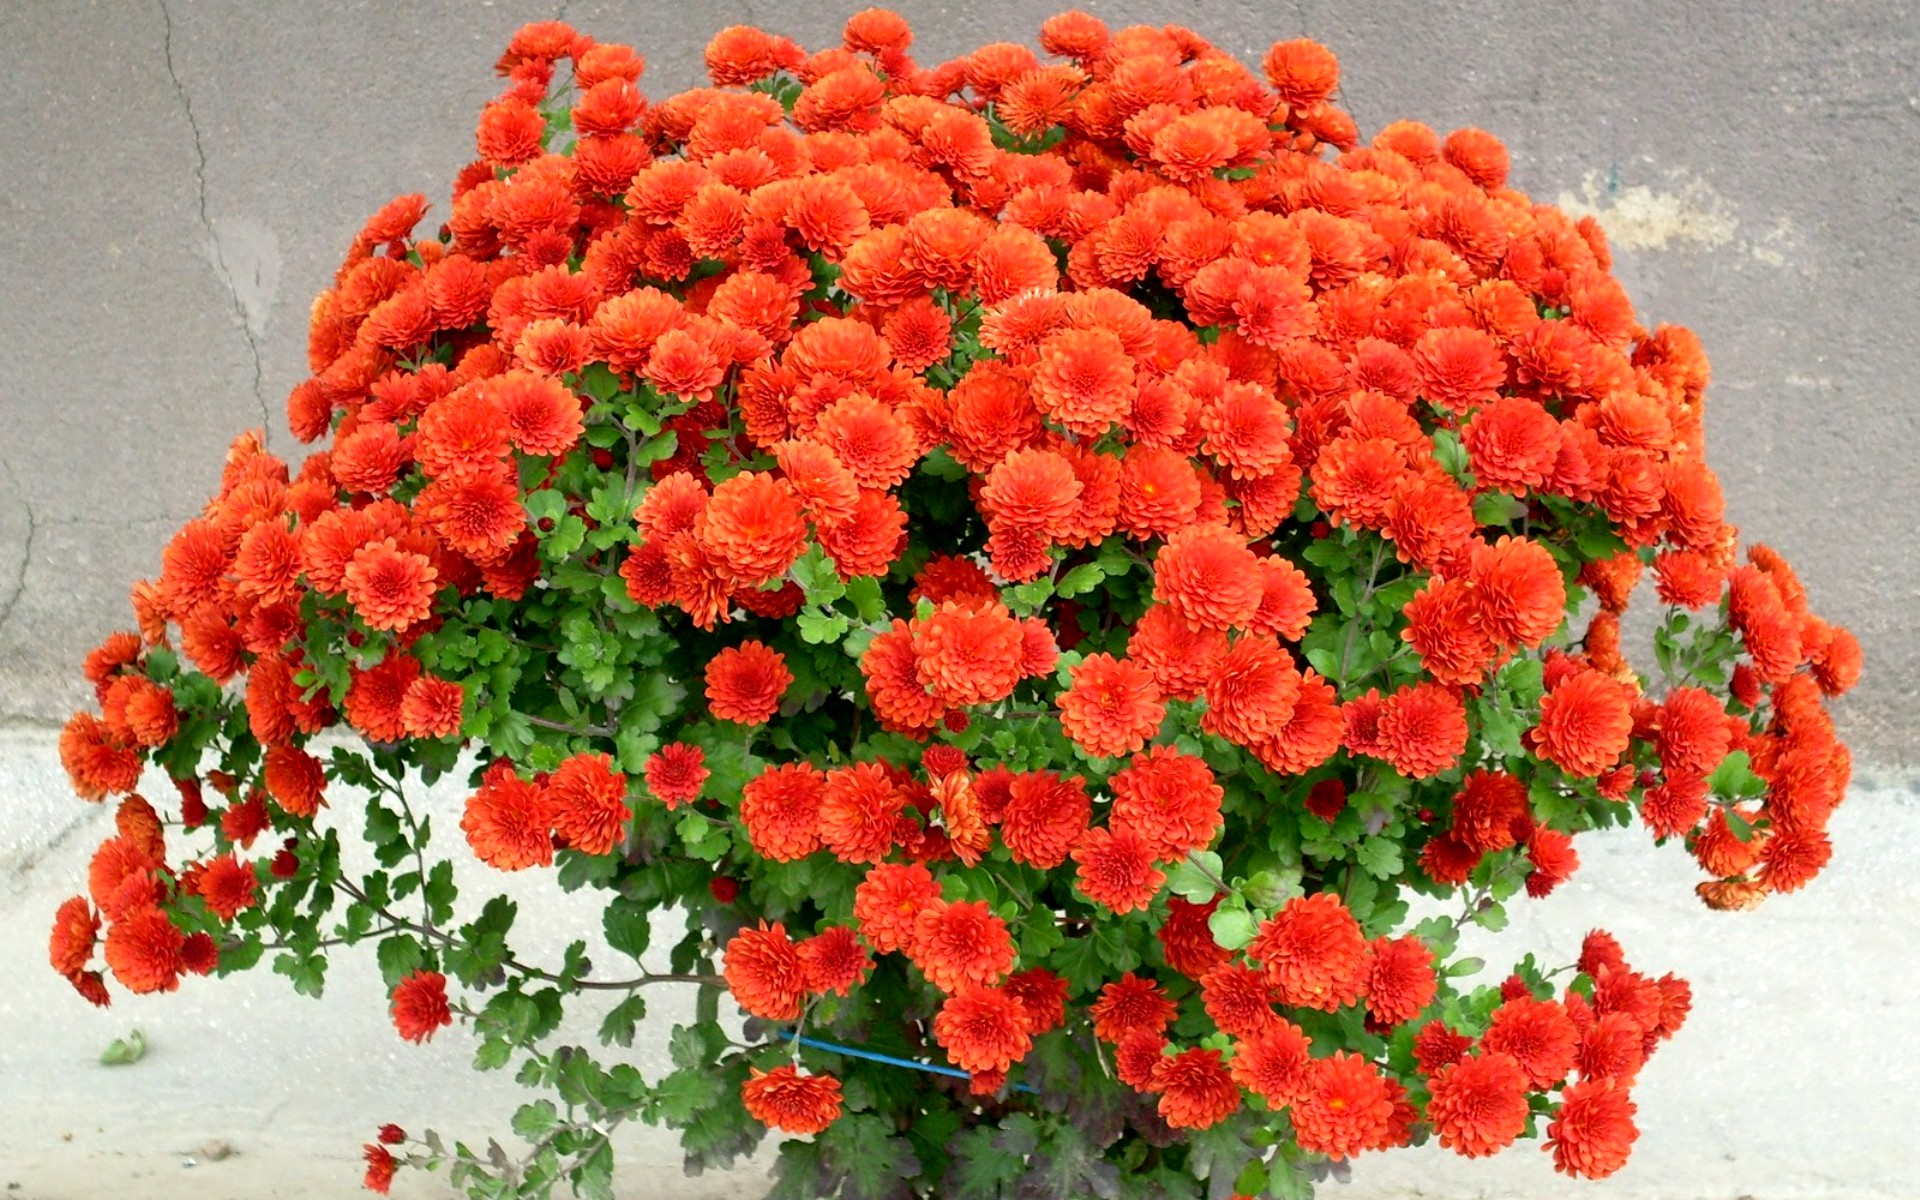 http://www.kartinki24.ru/uploads/gallery/main/443/kartinki24_ru_chrysanthemums_05.jpg